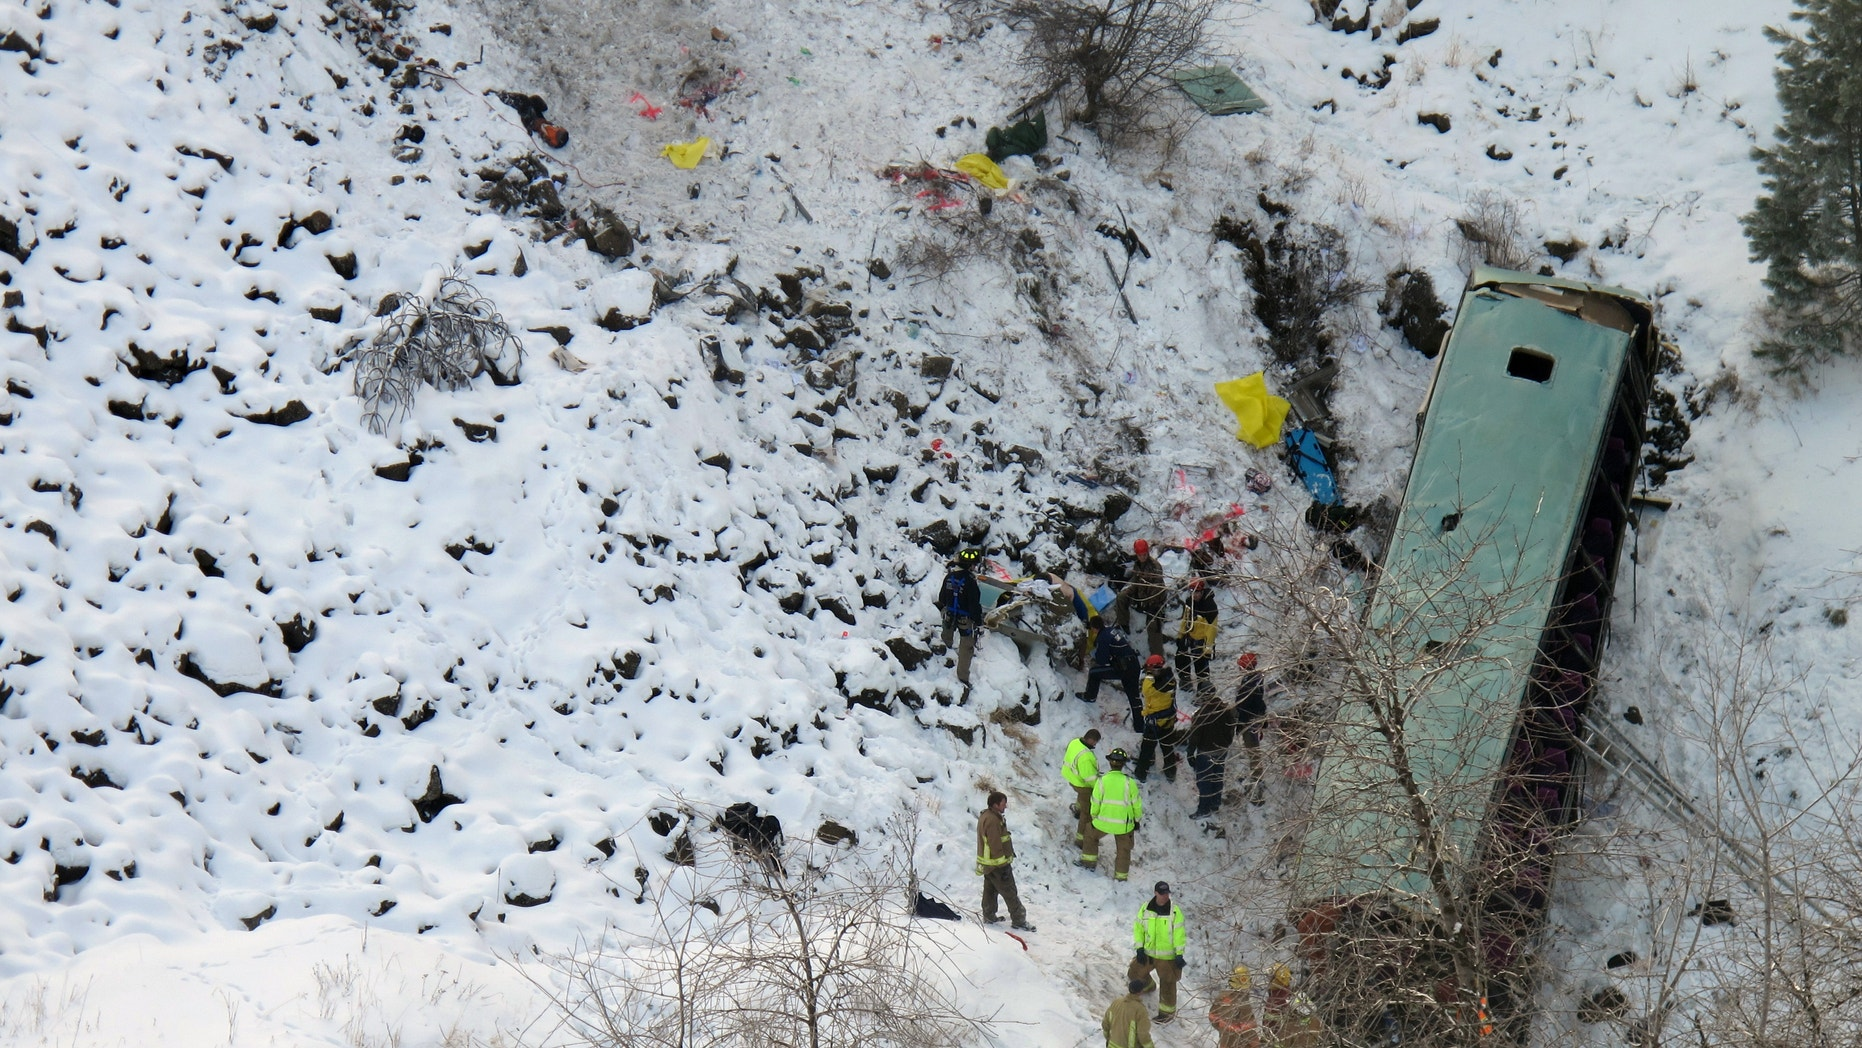 Dec. 30, 2012: Emergency personnel respond to the scene of a multiple fatality accident where a tour bus careened through a guardrail along an icy Oregon highway and fell several hundred feet down a steep embankment.